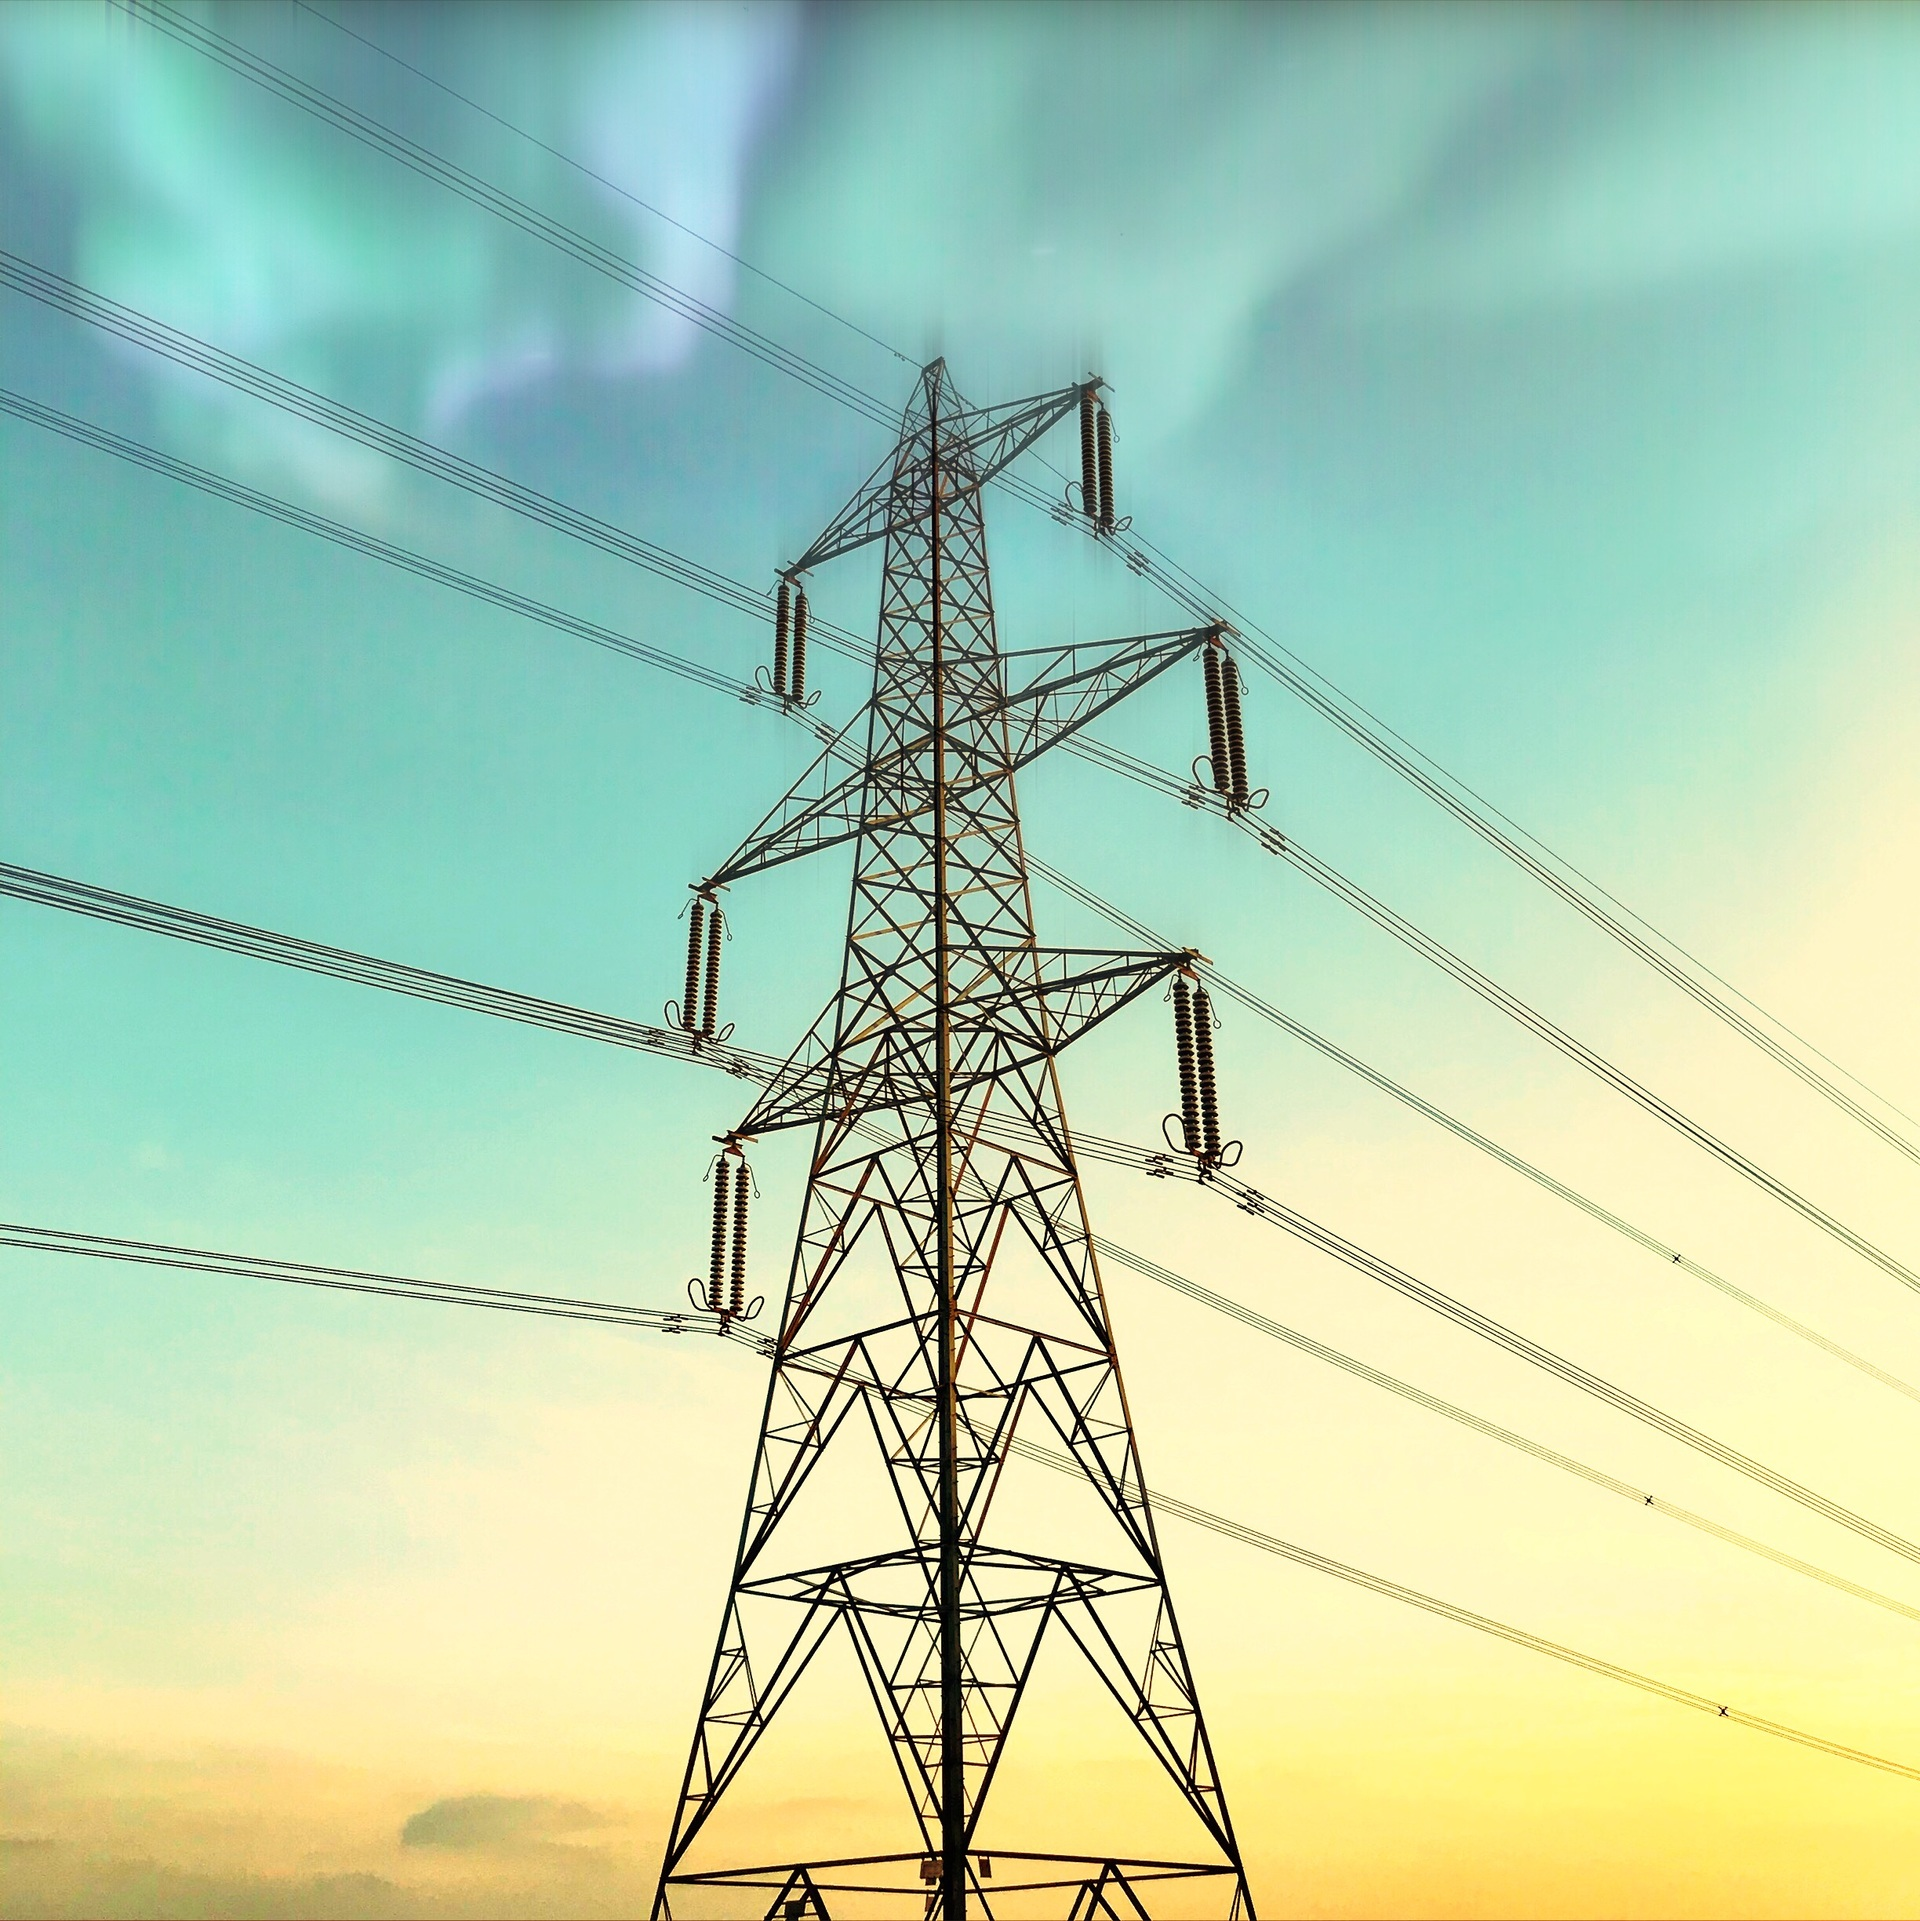 Voltage, Electricity, Power, Distribution, Supply